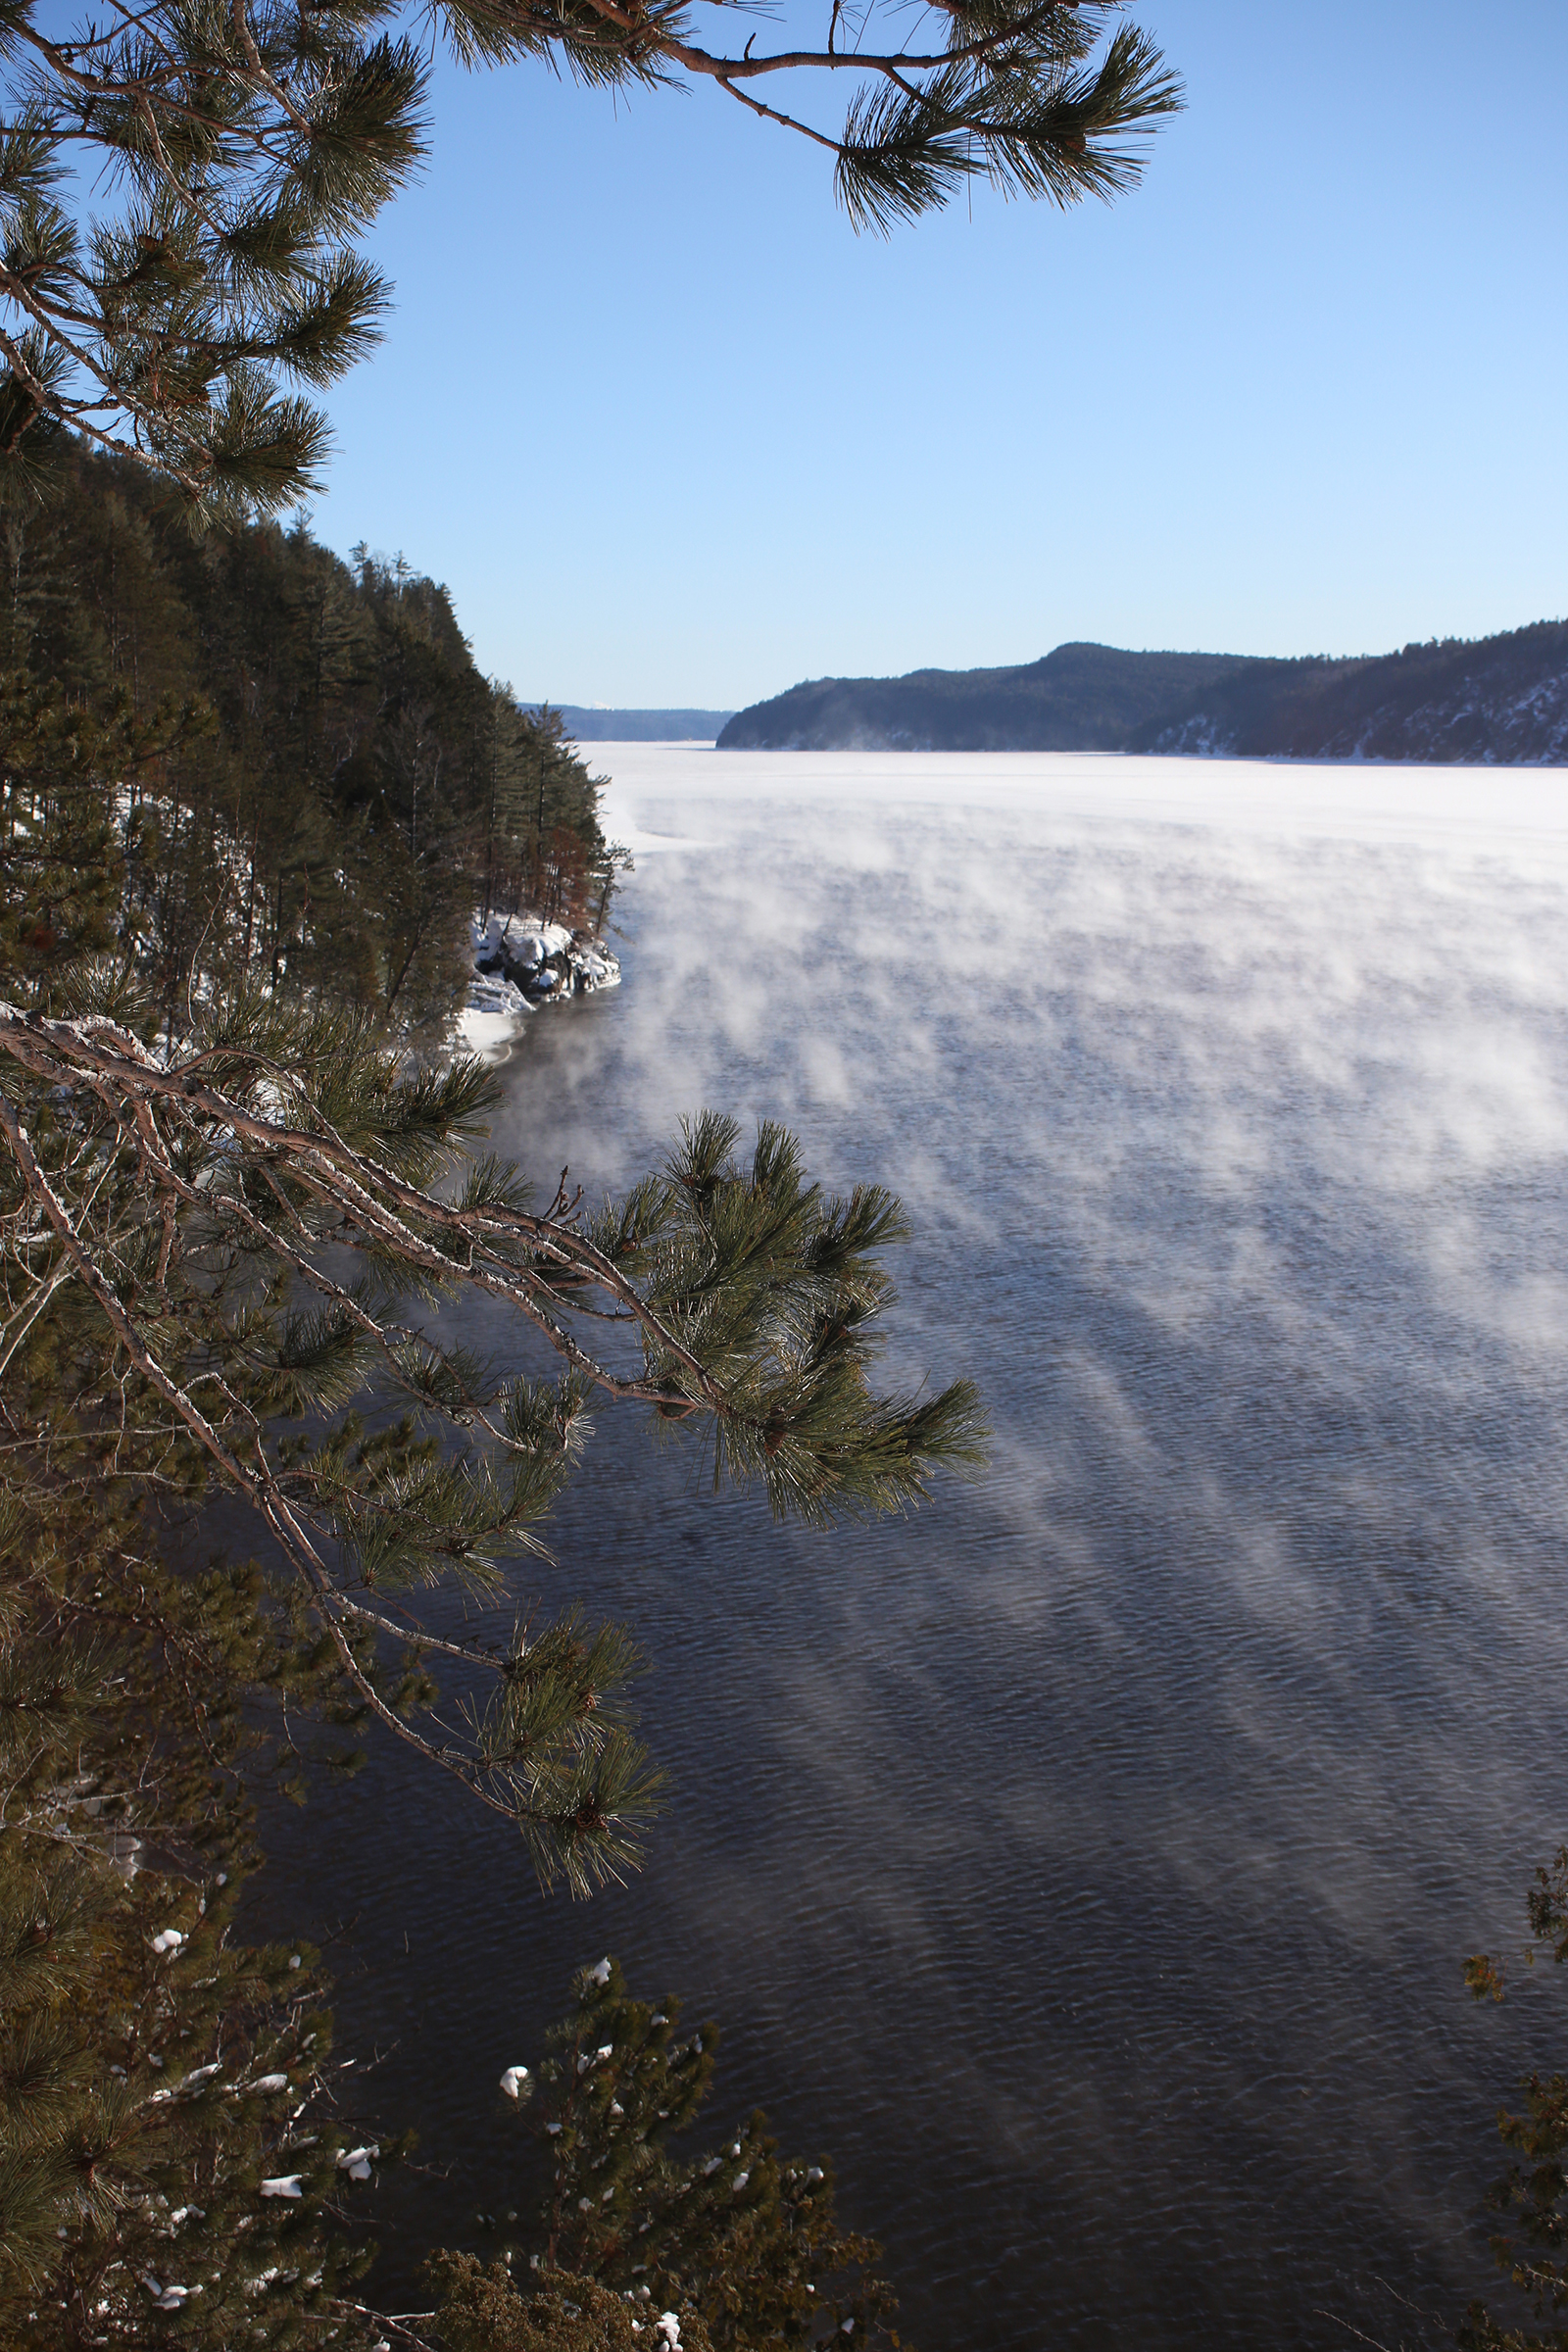 Steam rises from a long lake flanked by high cliffs on a winter morning